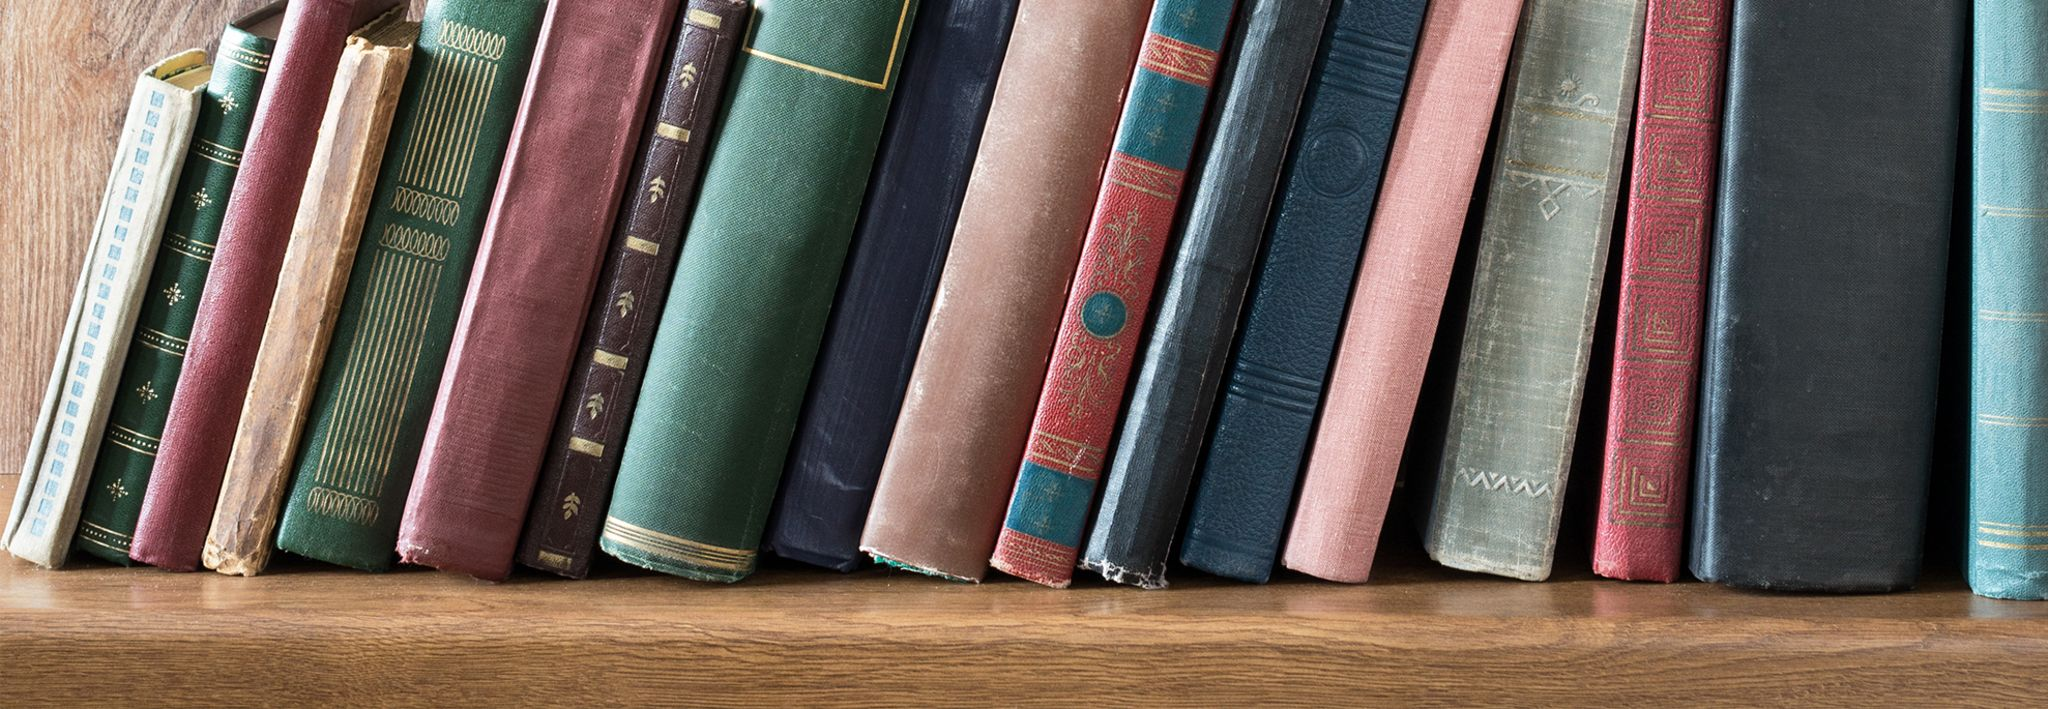 Several general studies books are leaning on a shelf.